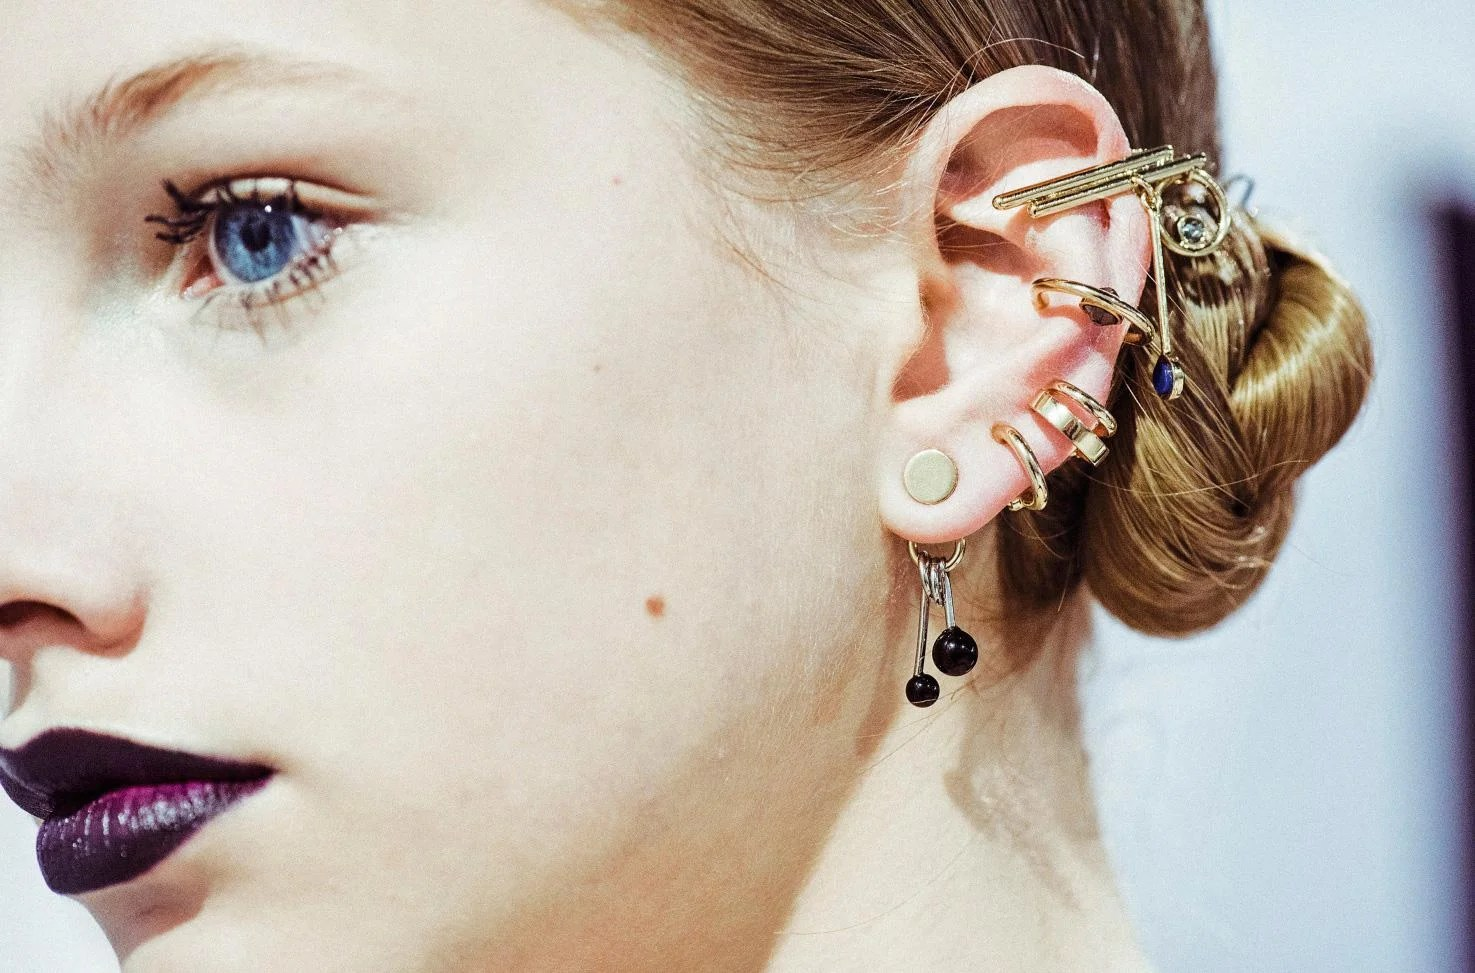 Dior aw also the health benefits of ear piercings london evening standard rh